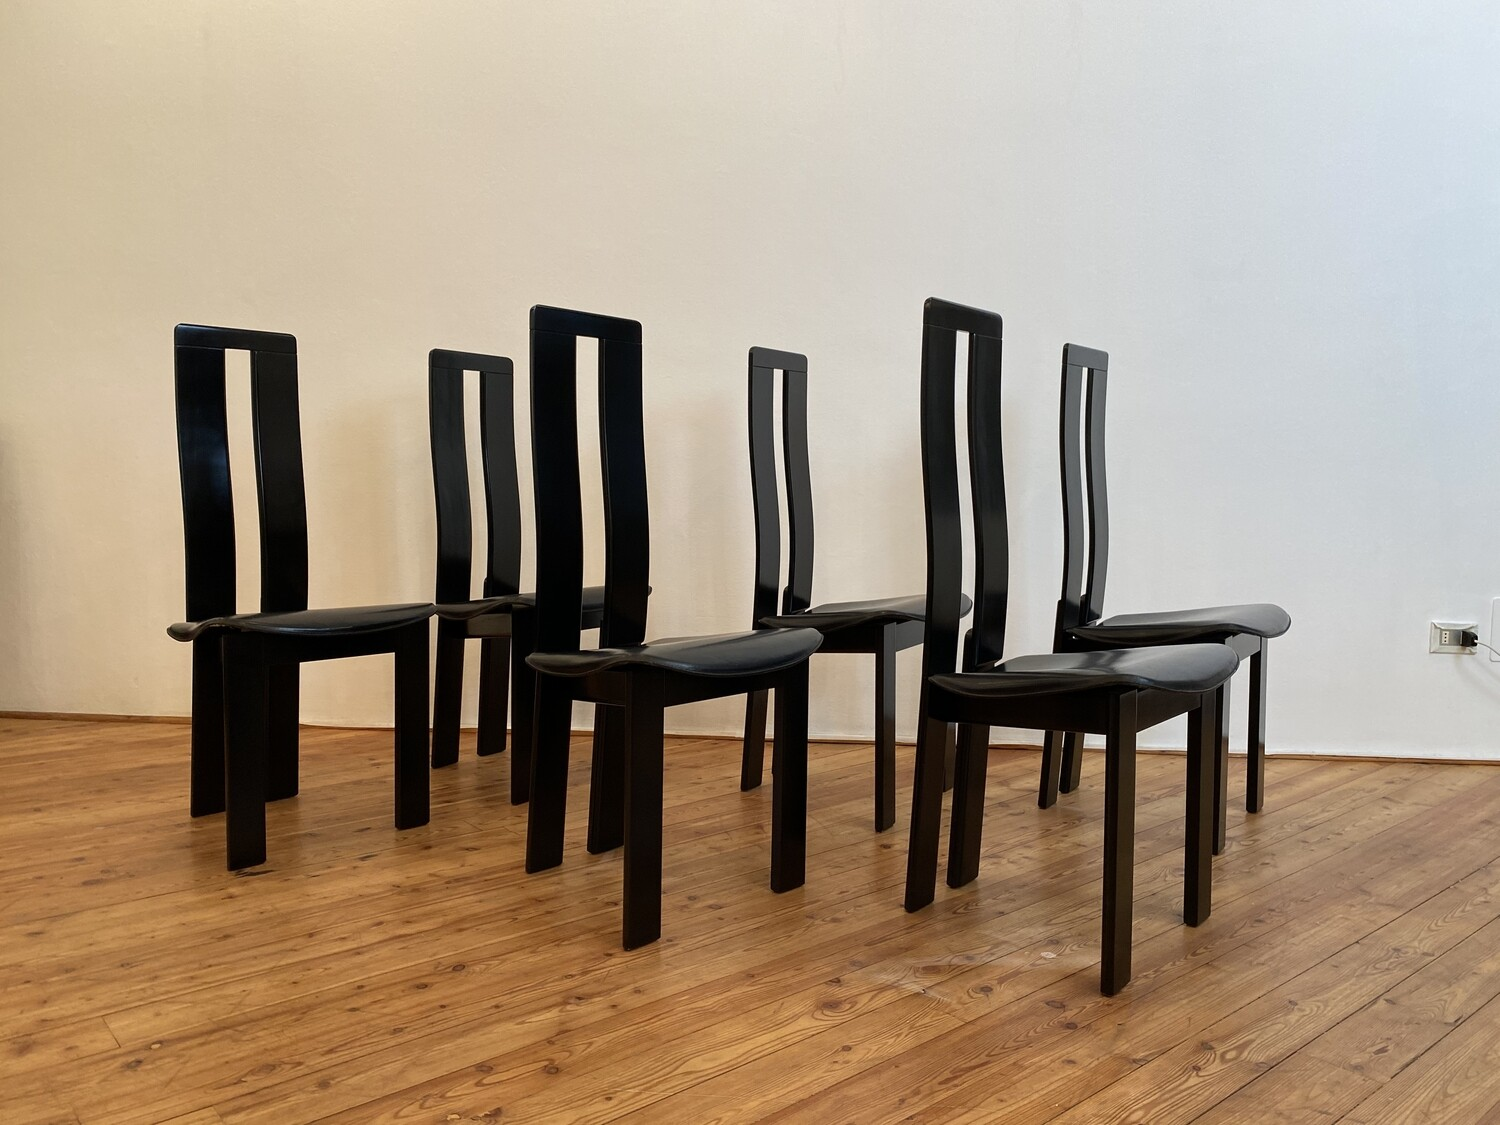 Set of 6 Piero Costantini chairs for Ello, 1970